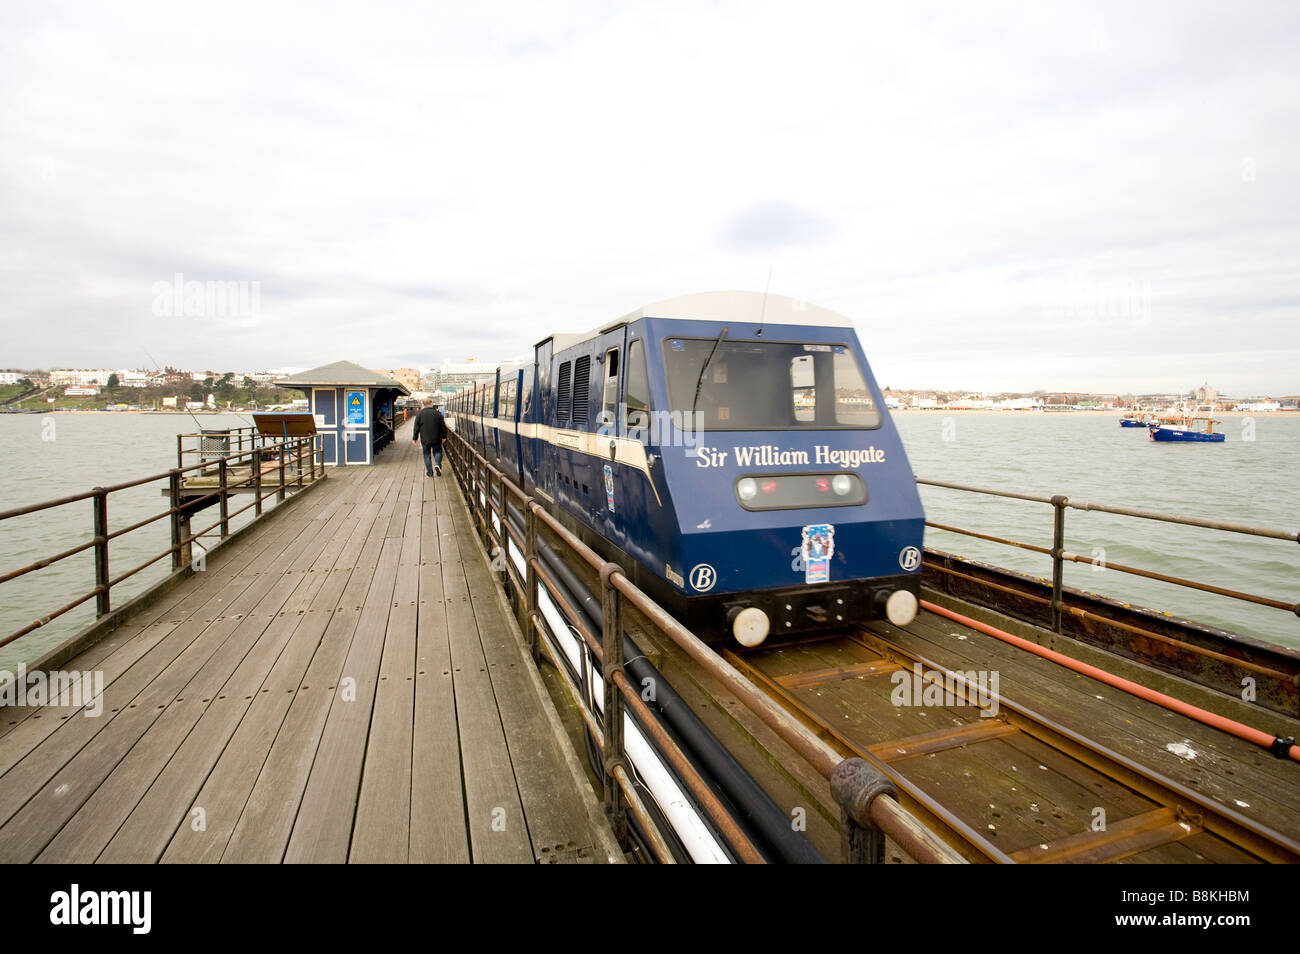 The train on Southend Pier - Stock Image